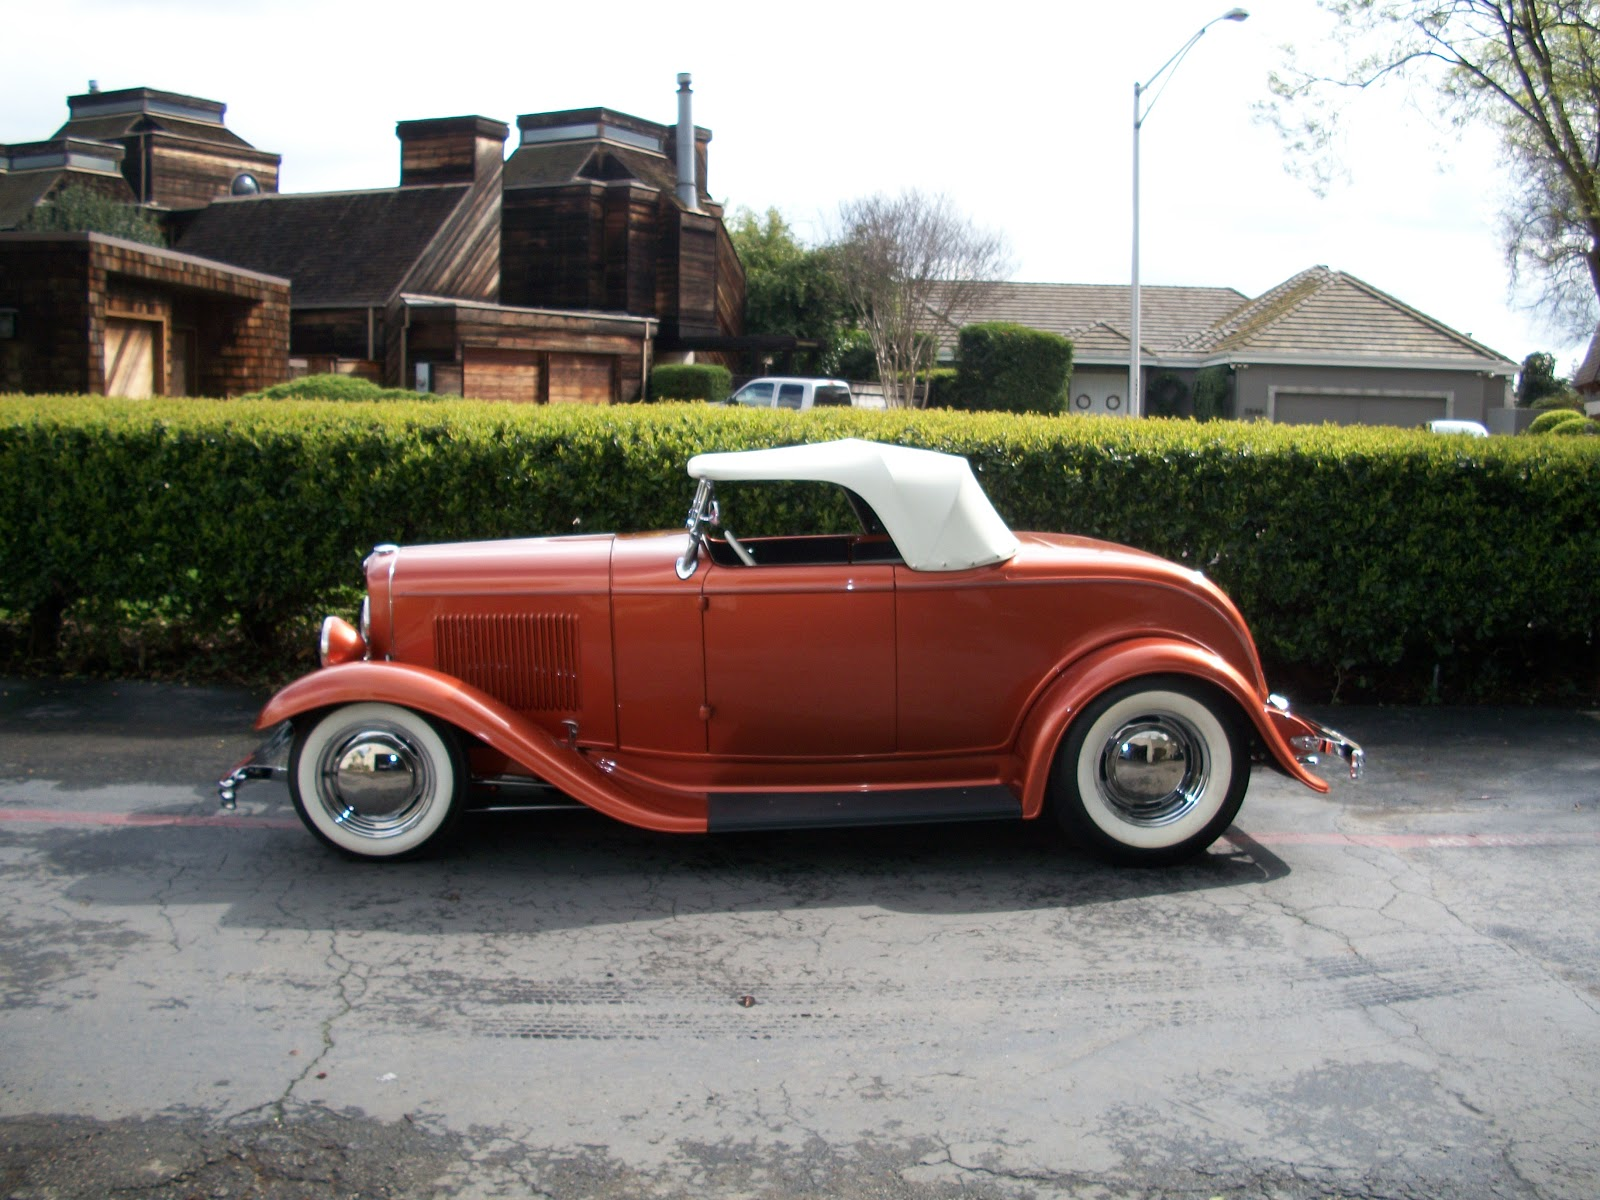 1932 ford full fendered roadster for sale click for details 1932 ford. Cars Review. Best American Auto & Cars Review